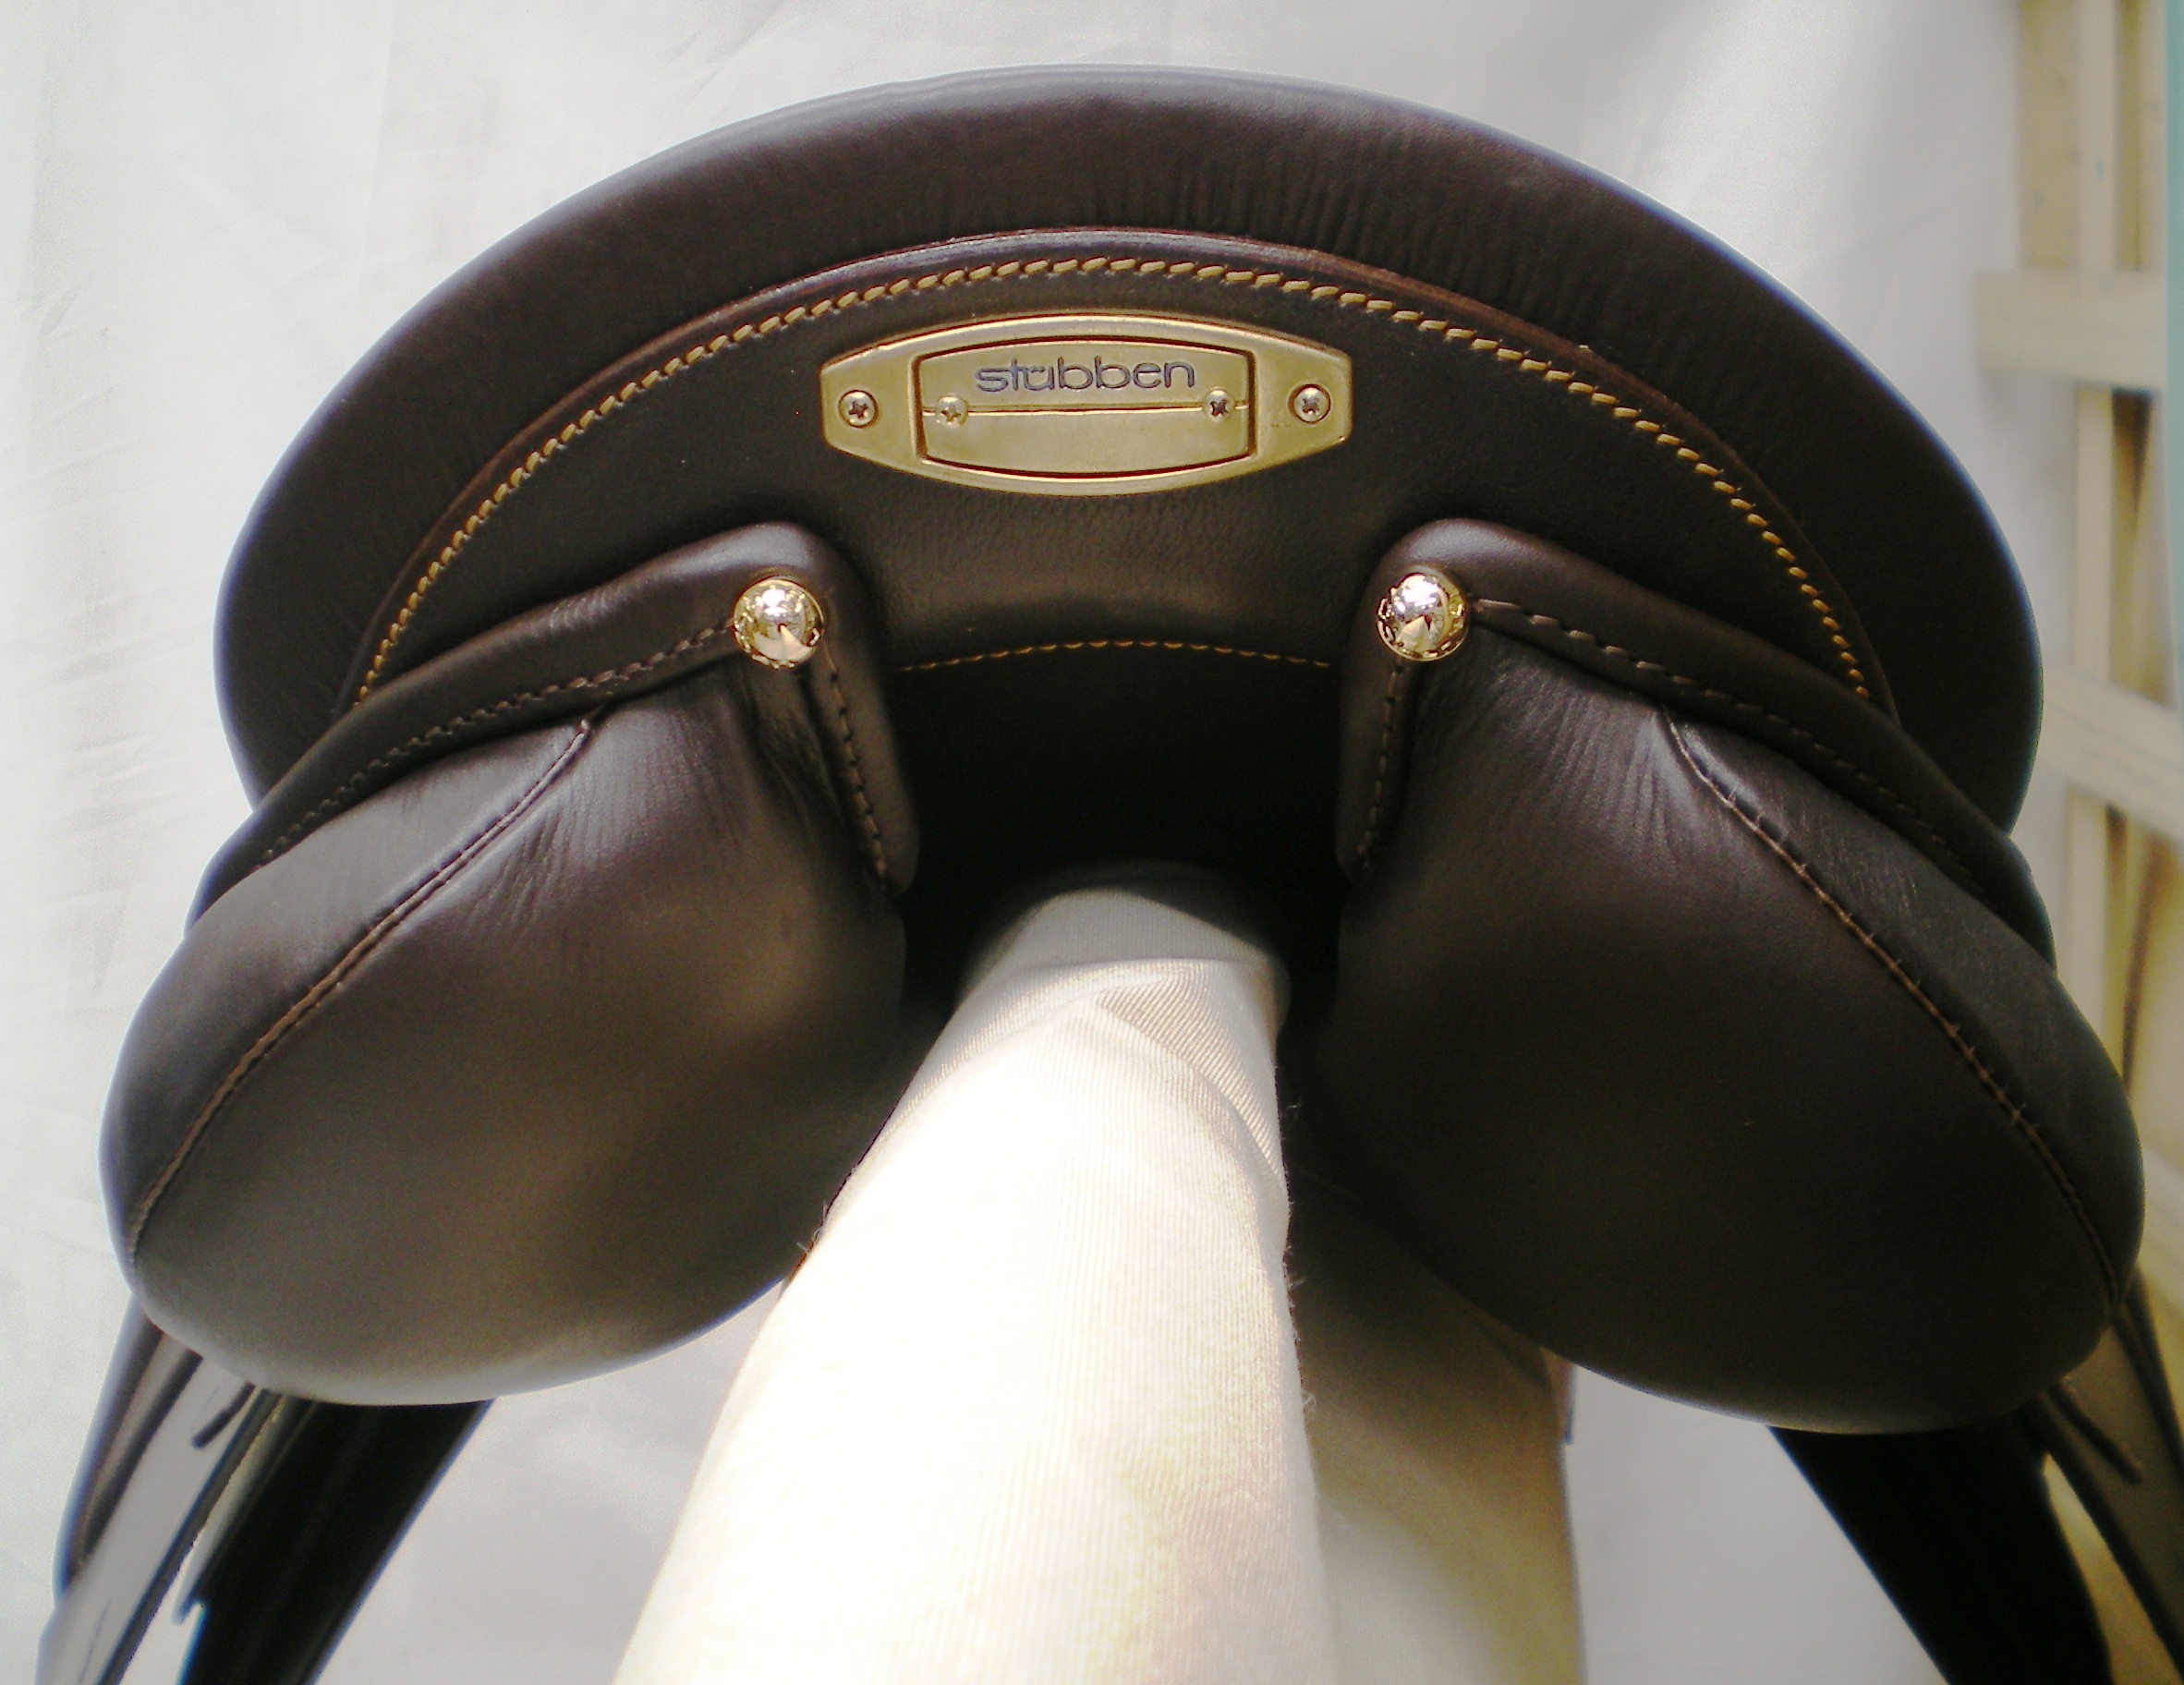 STUBBEN JUVENTUS DRESSAGE SADDLE - STUBBEN : Saddles